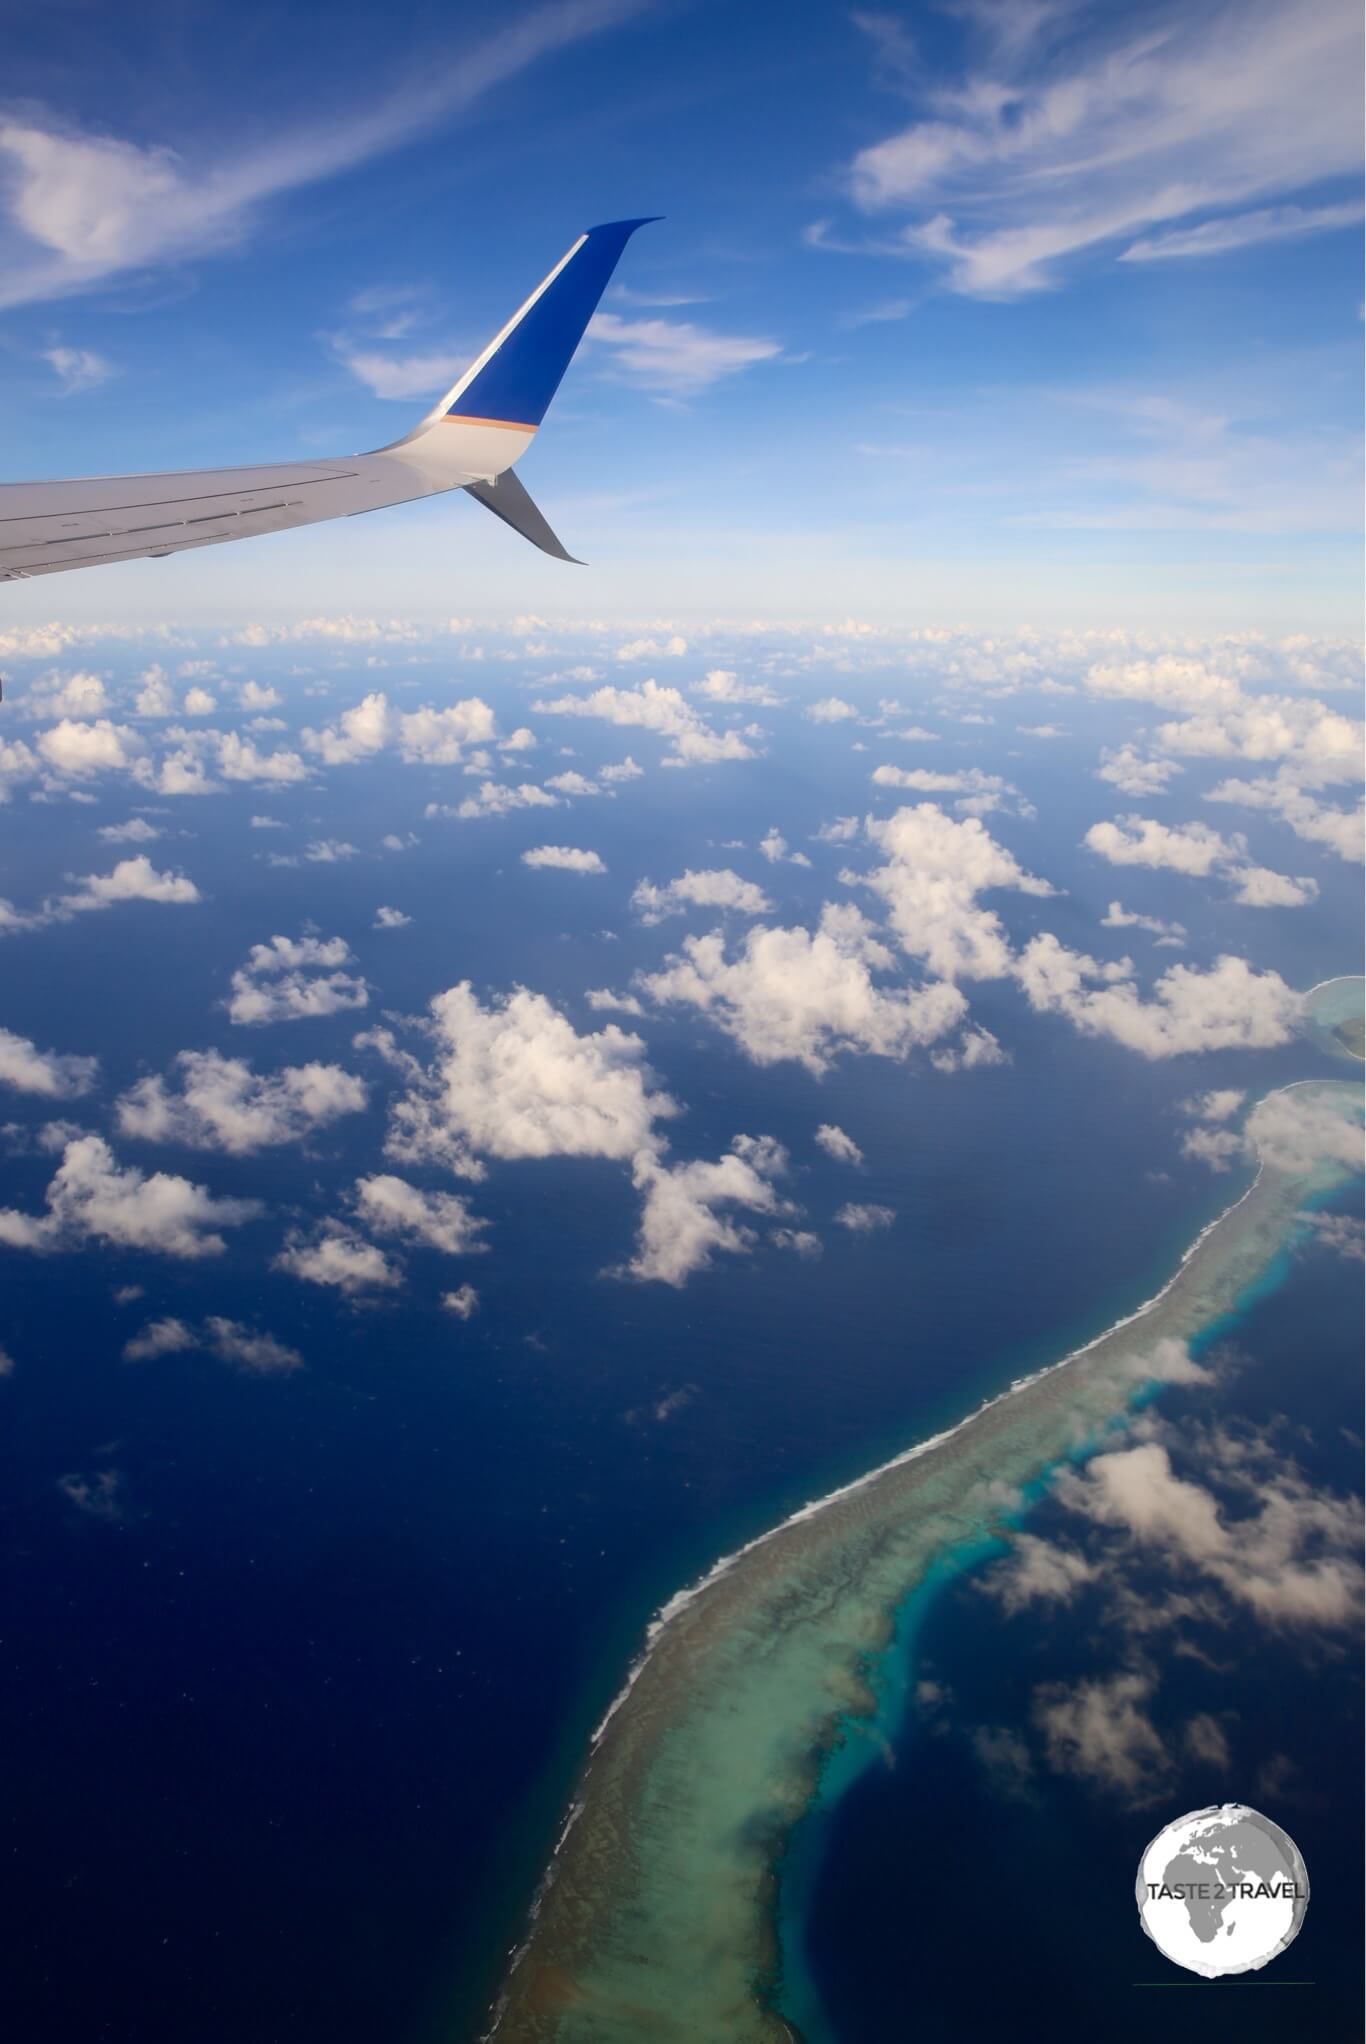 United Airlines' UA154 on approach to Chuuk International Airport.